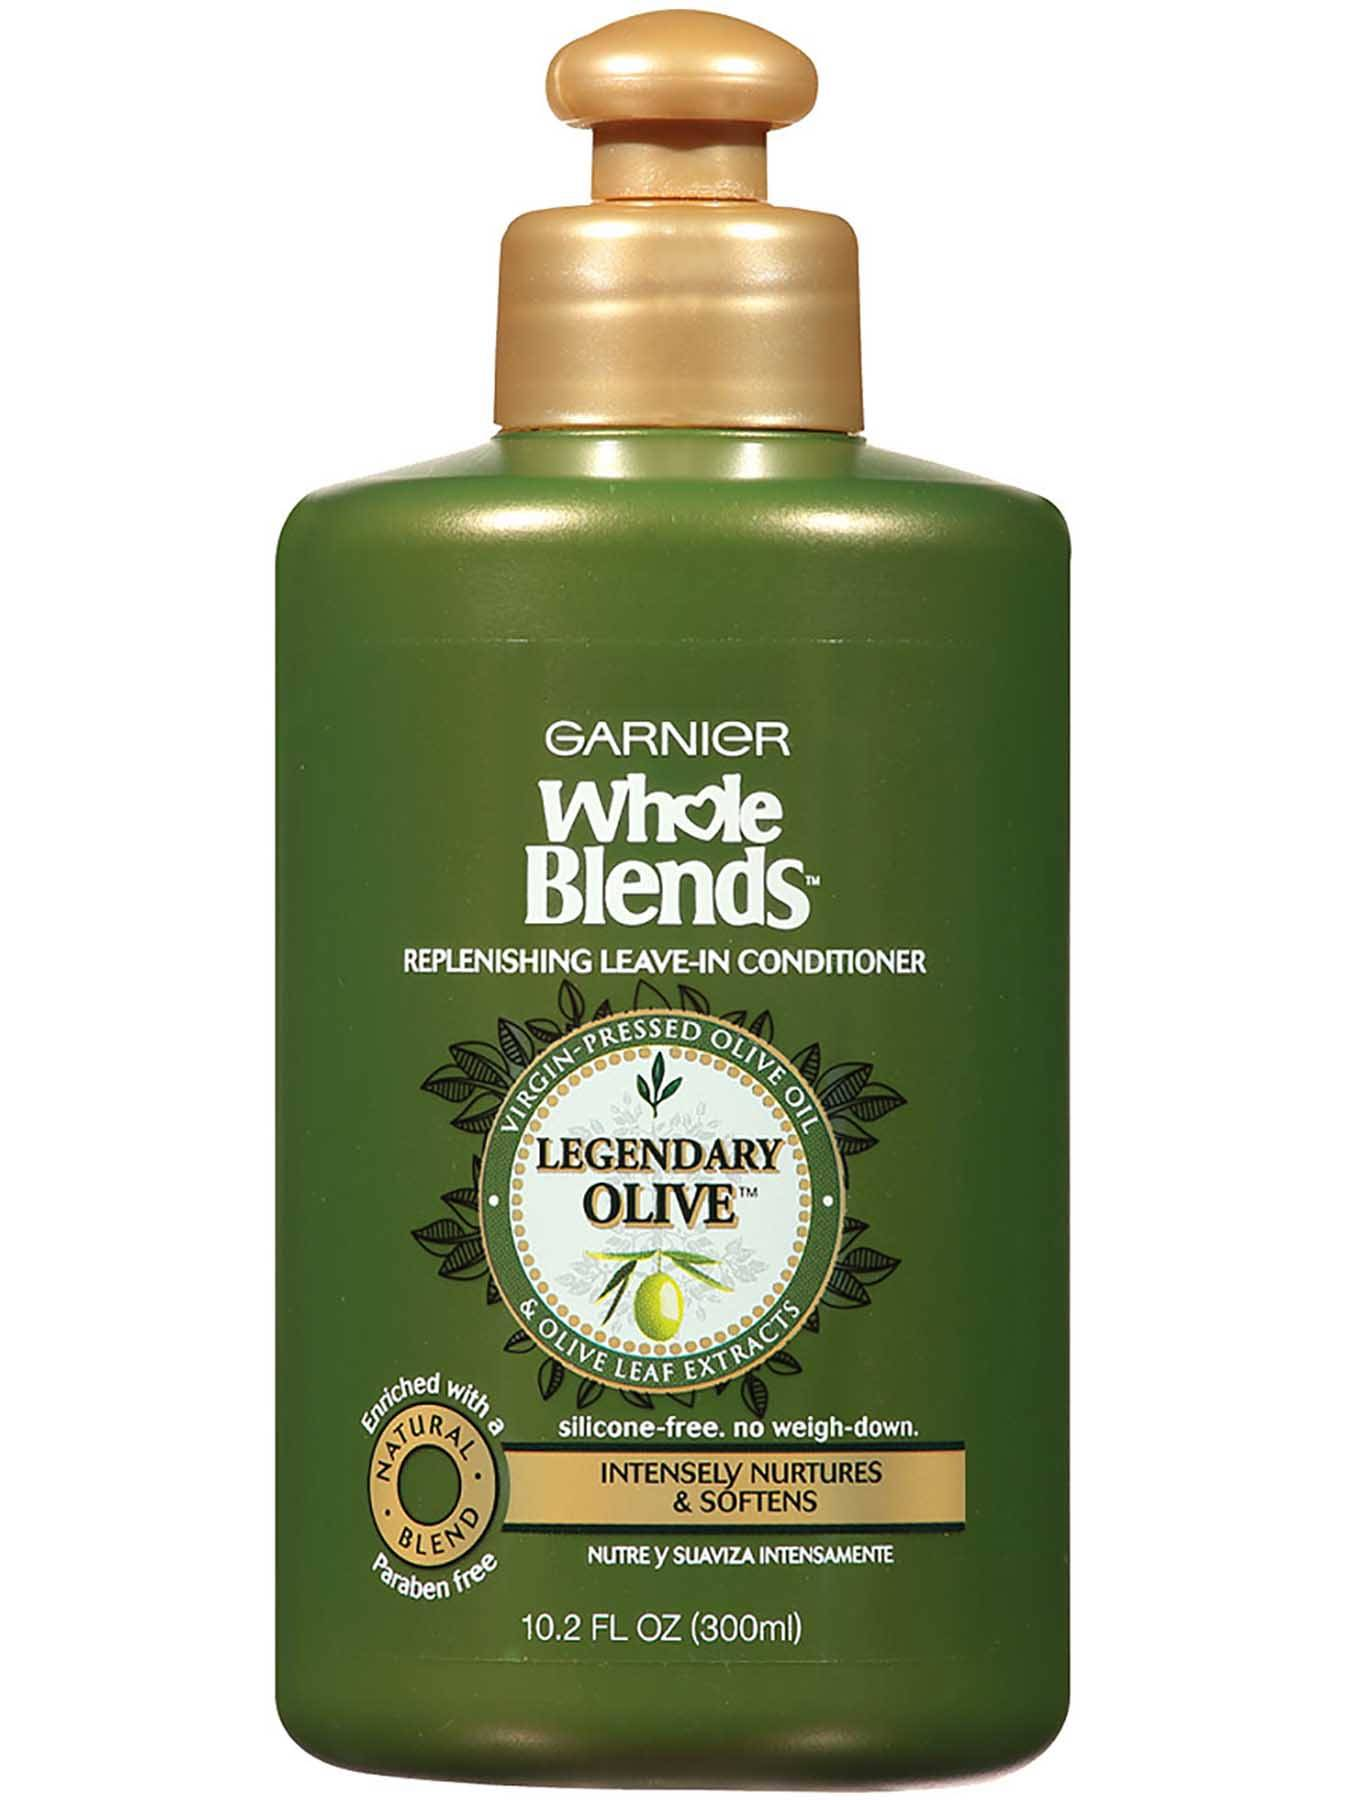 Front view of Replenishing Leave-In Conditioner with Legendary Virgin-Pressed Olive Oil and Olive Leaf Extracts.